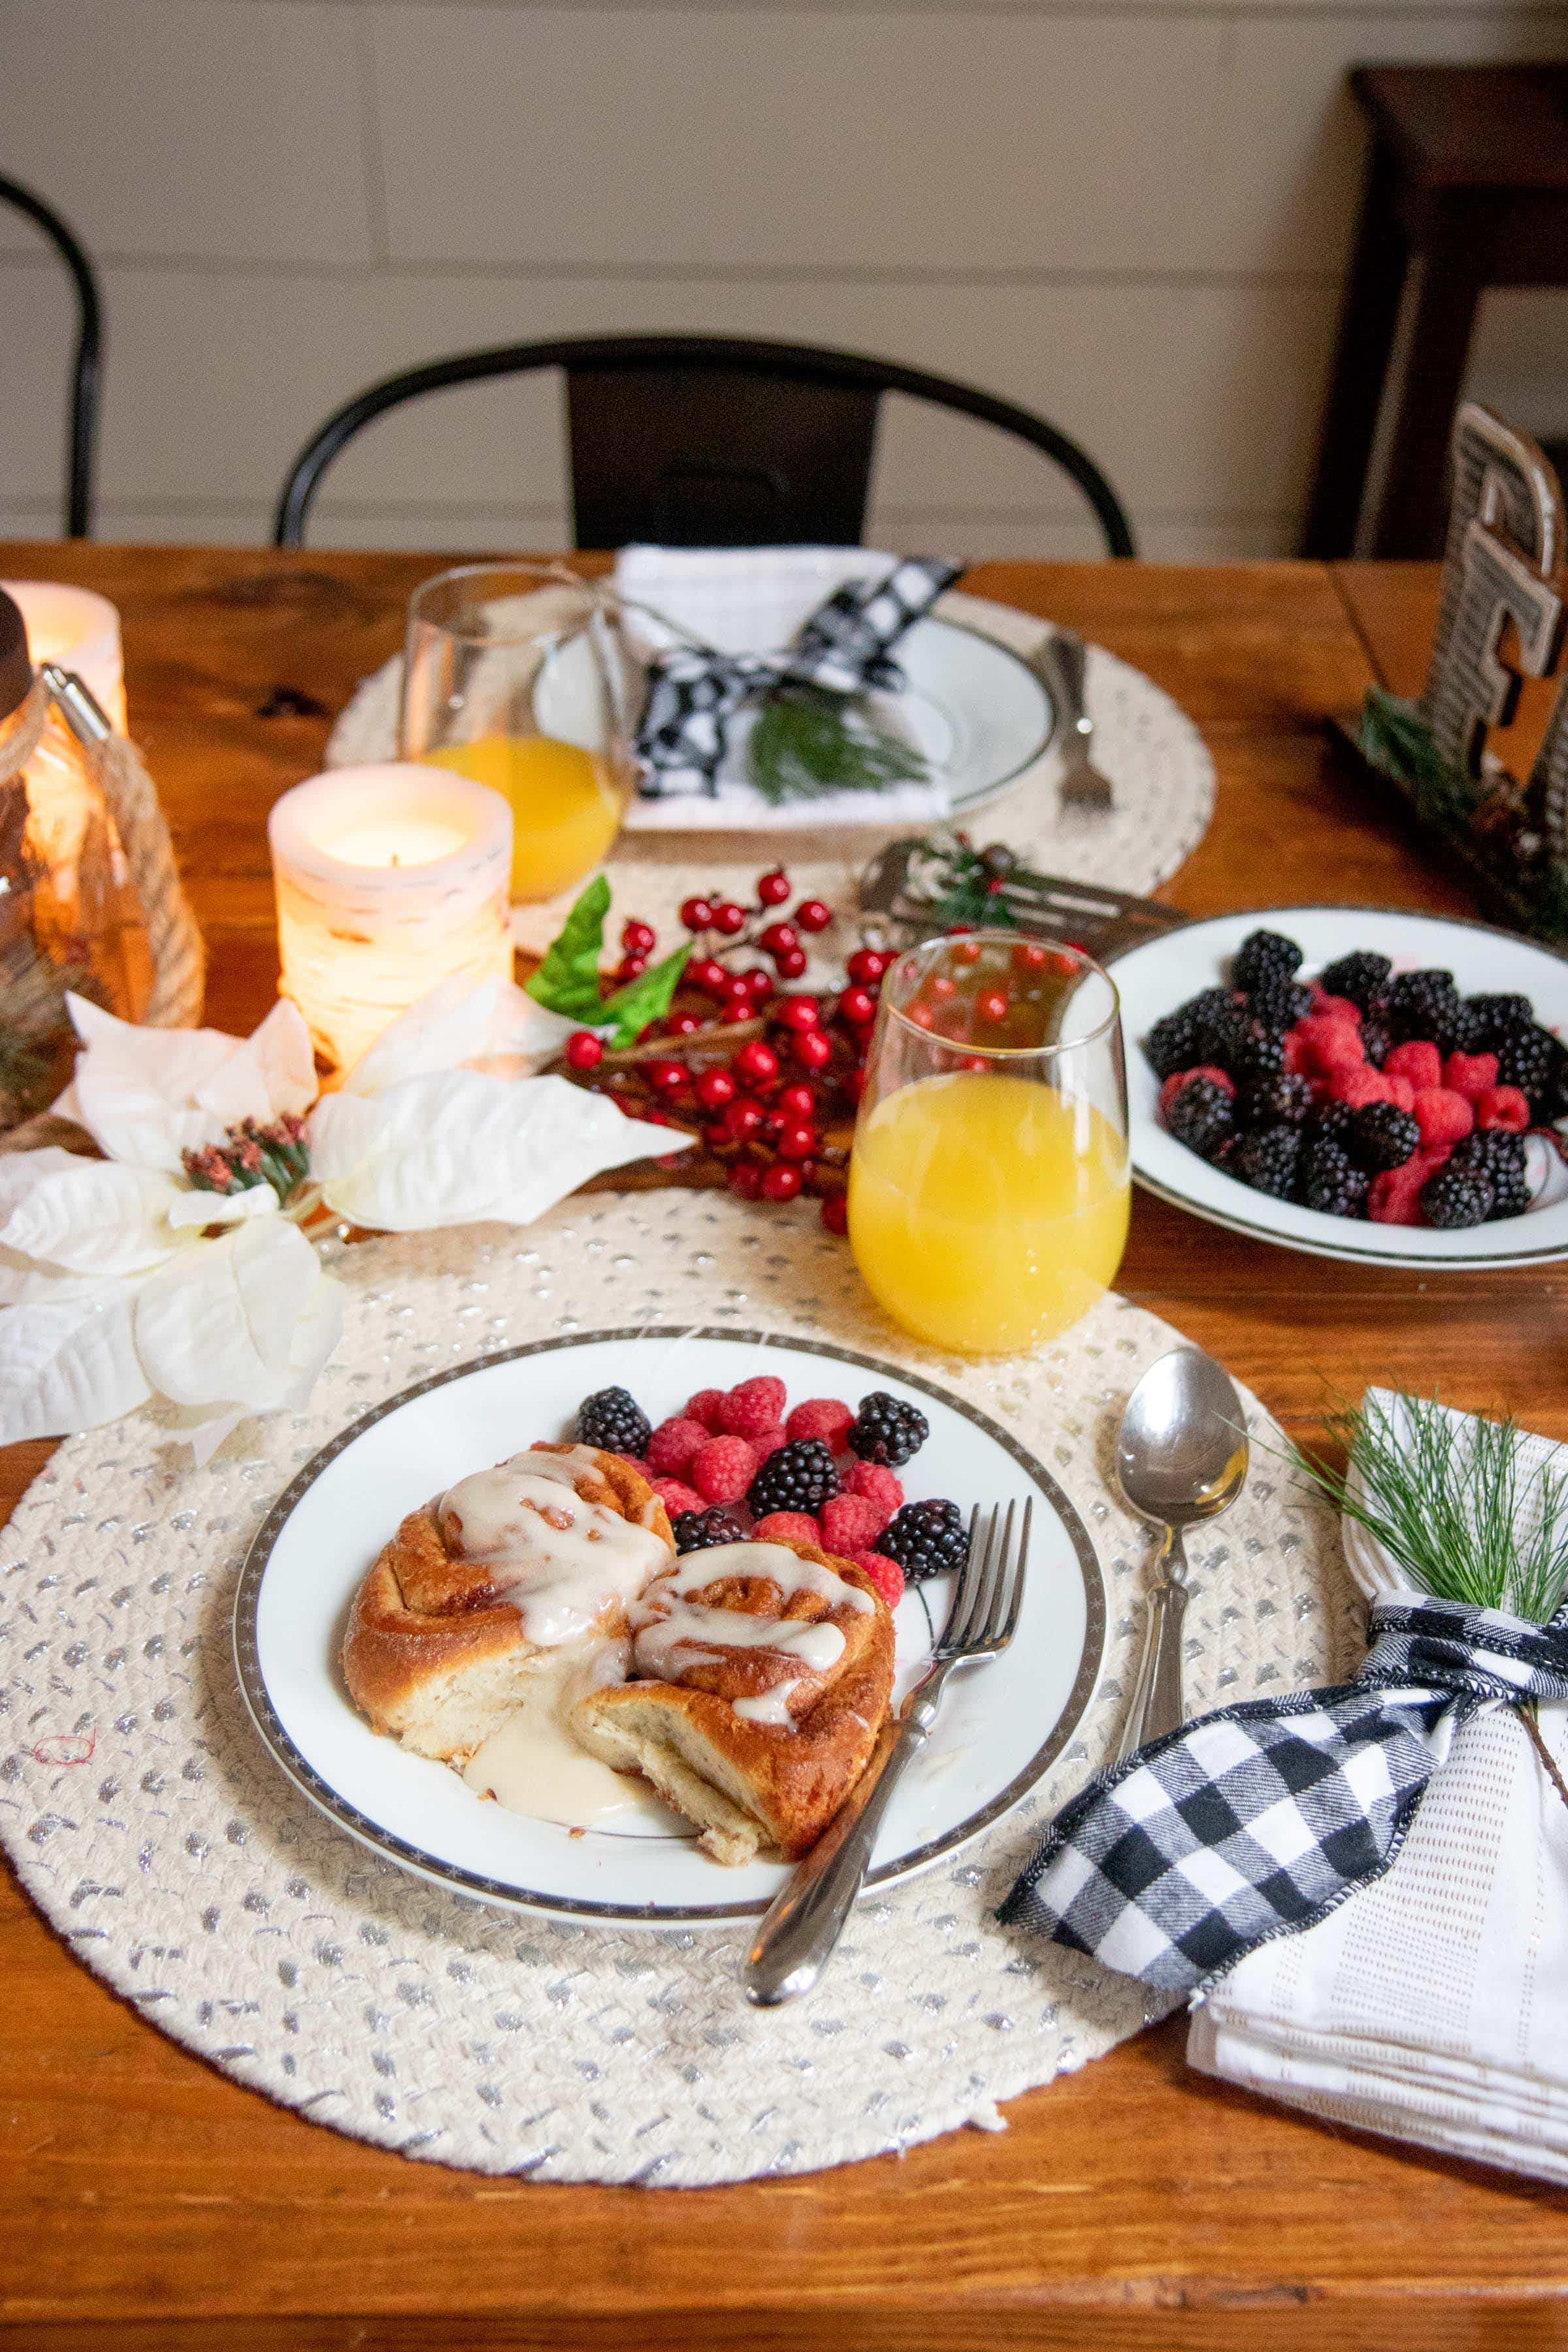 A plated Christmas breakfast, with cinnamon rolls and berries on a white plate, with a mimosa and more place settings behind.